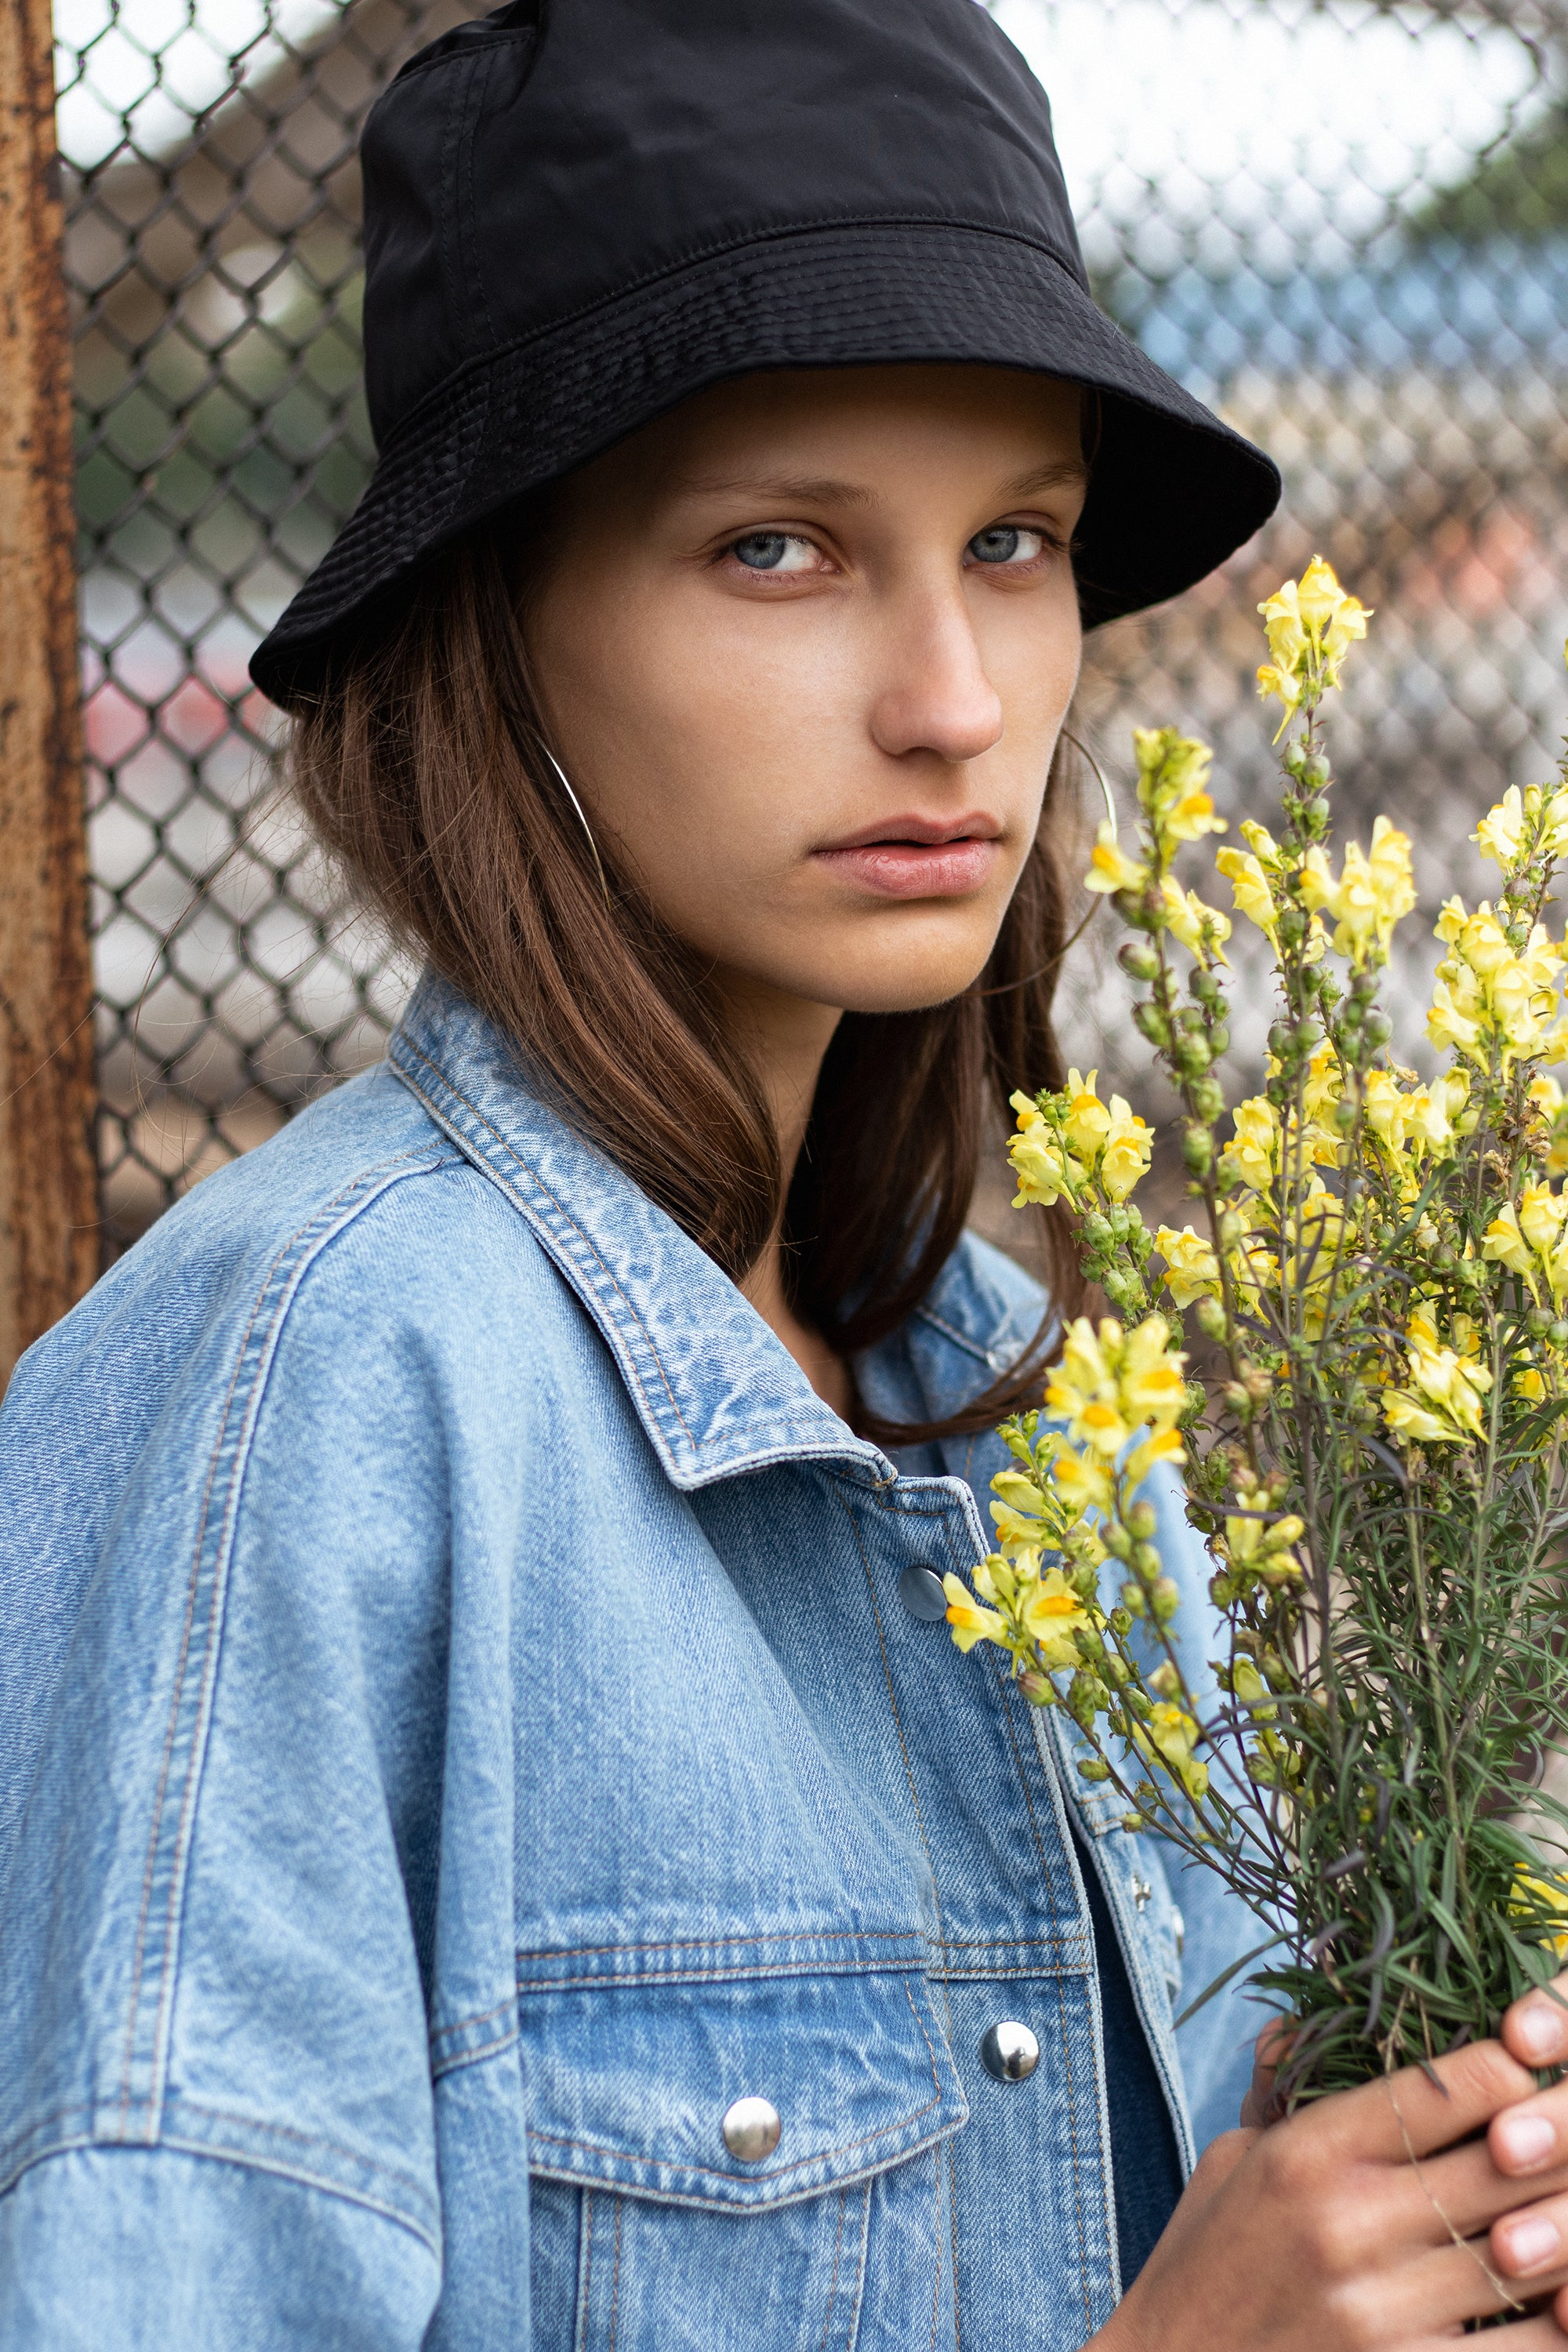 le-slap-girl-streetstyle-photoshoot-denim-genes2-jacket-with-wording.jpg